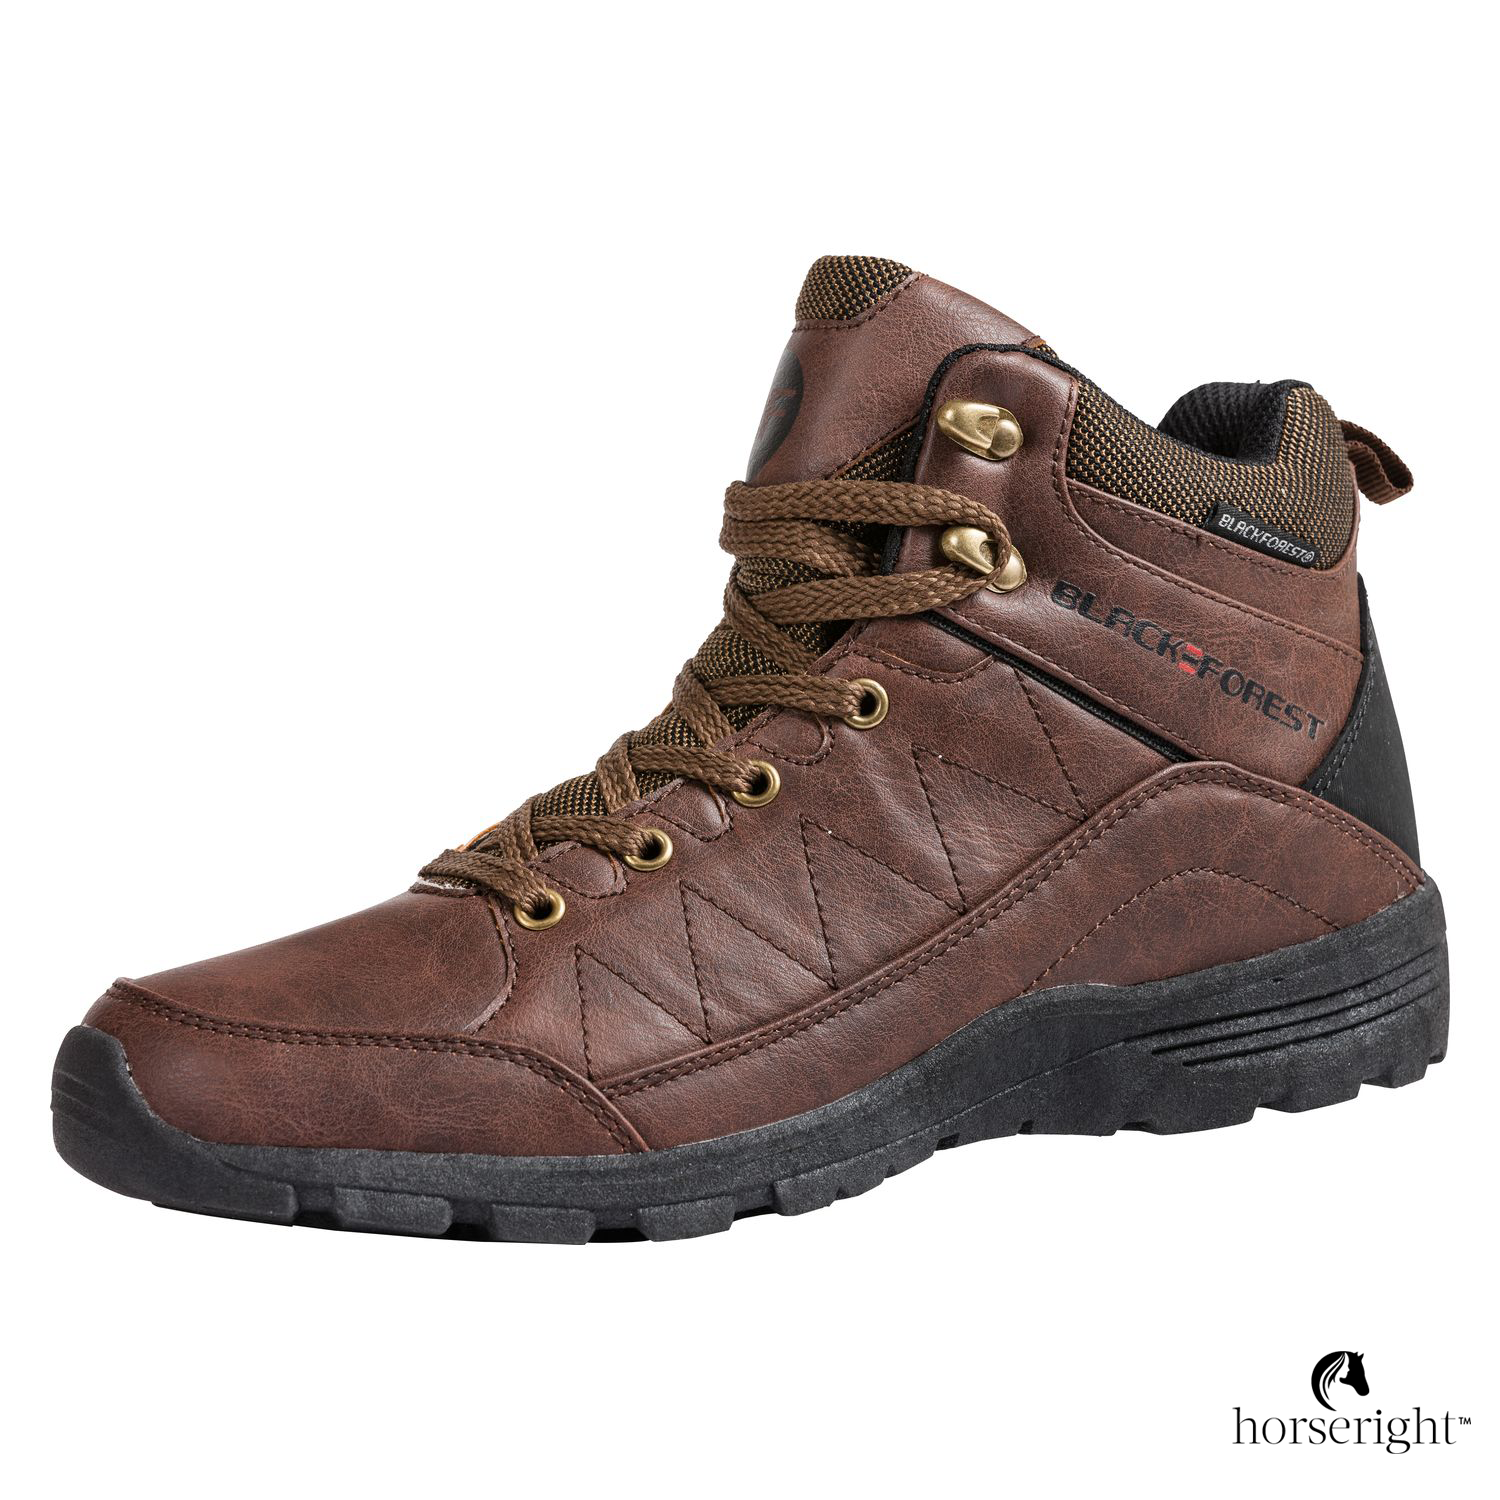 Black Forest Riding And Trekking Shoe